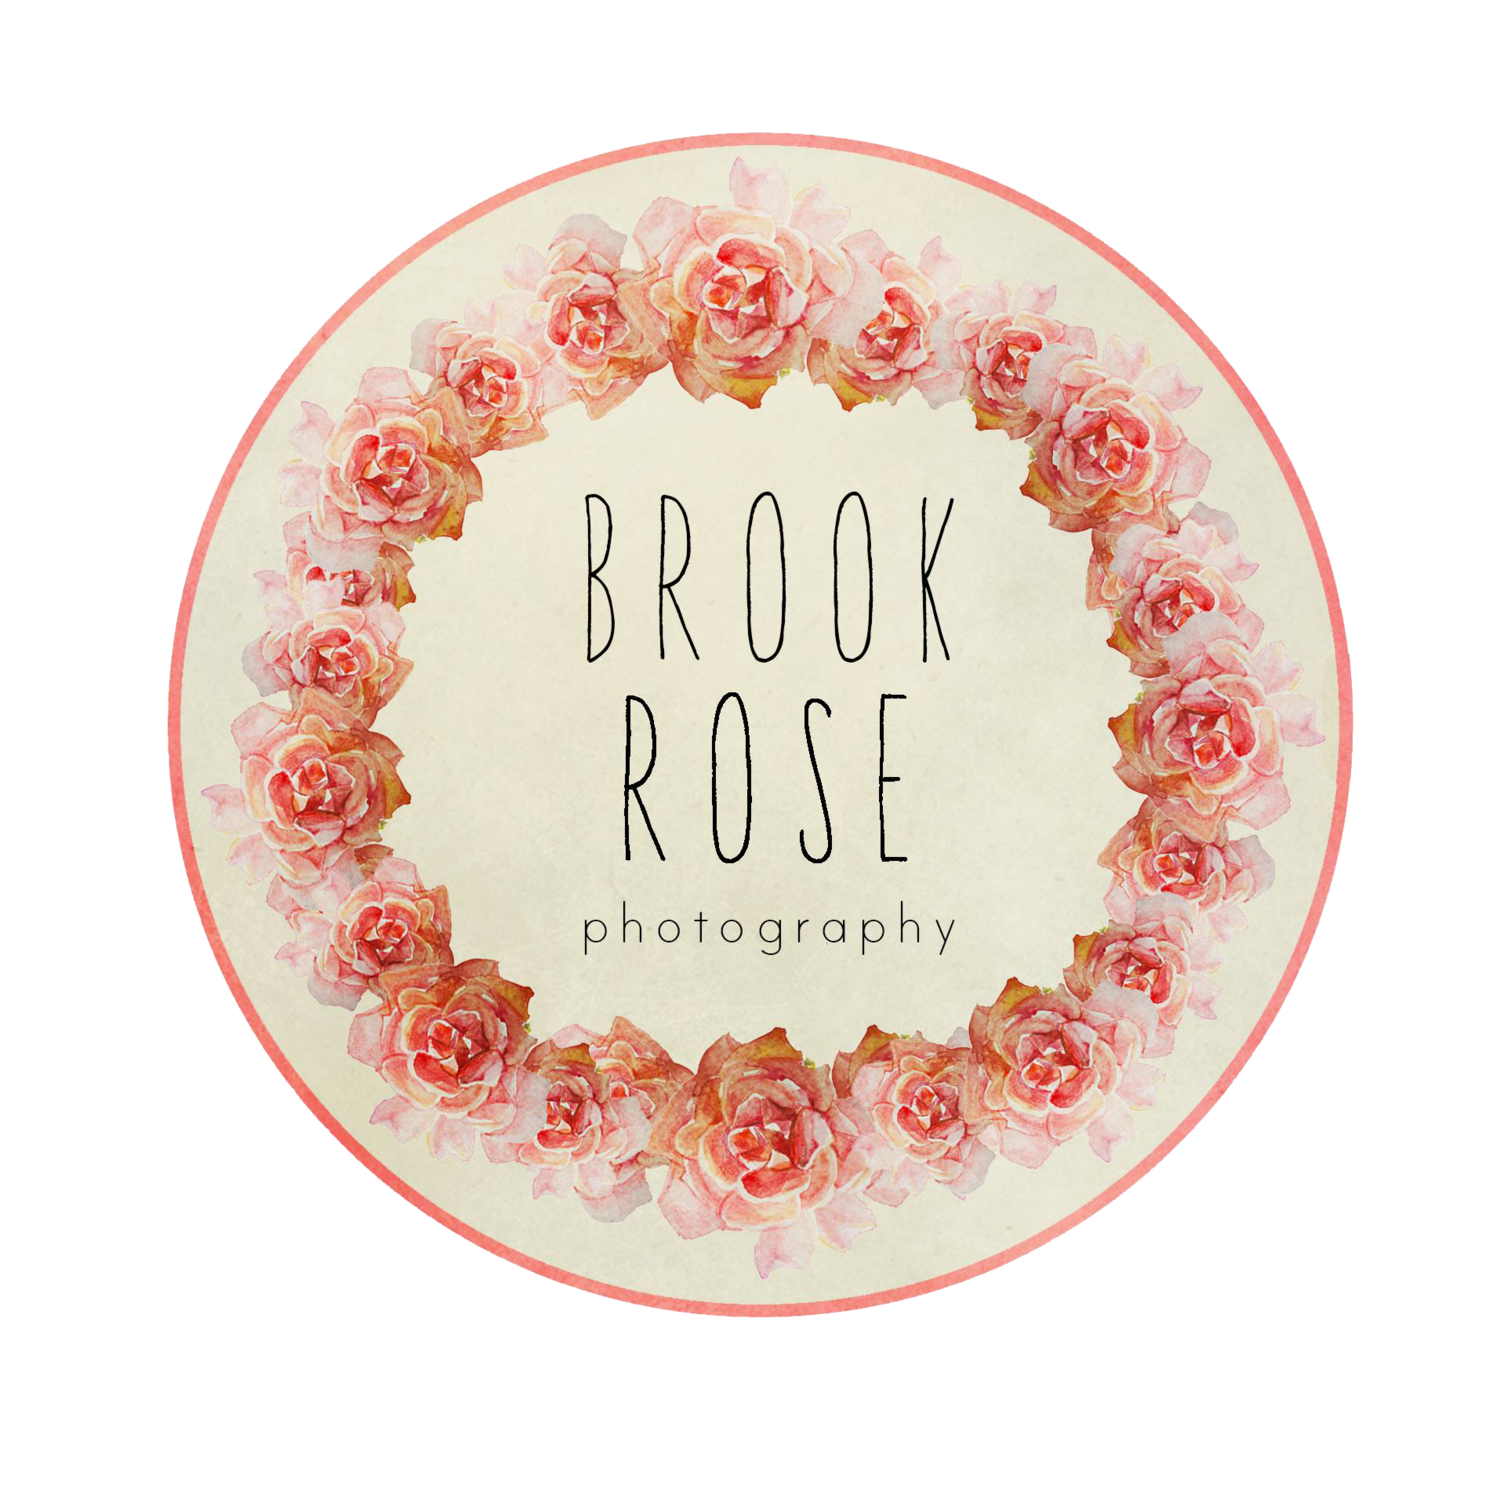 Brook Rose Photography